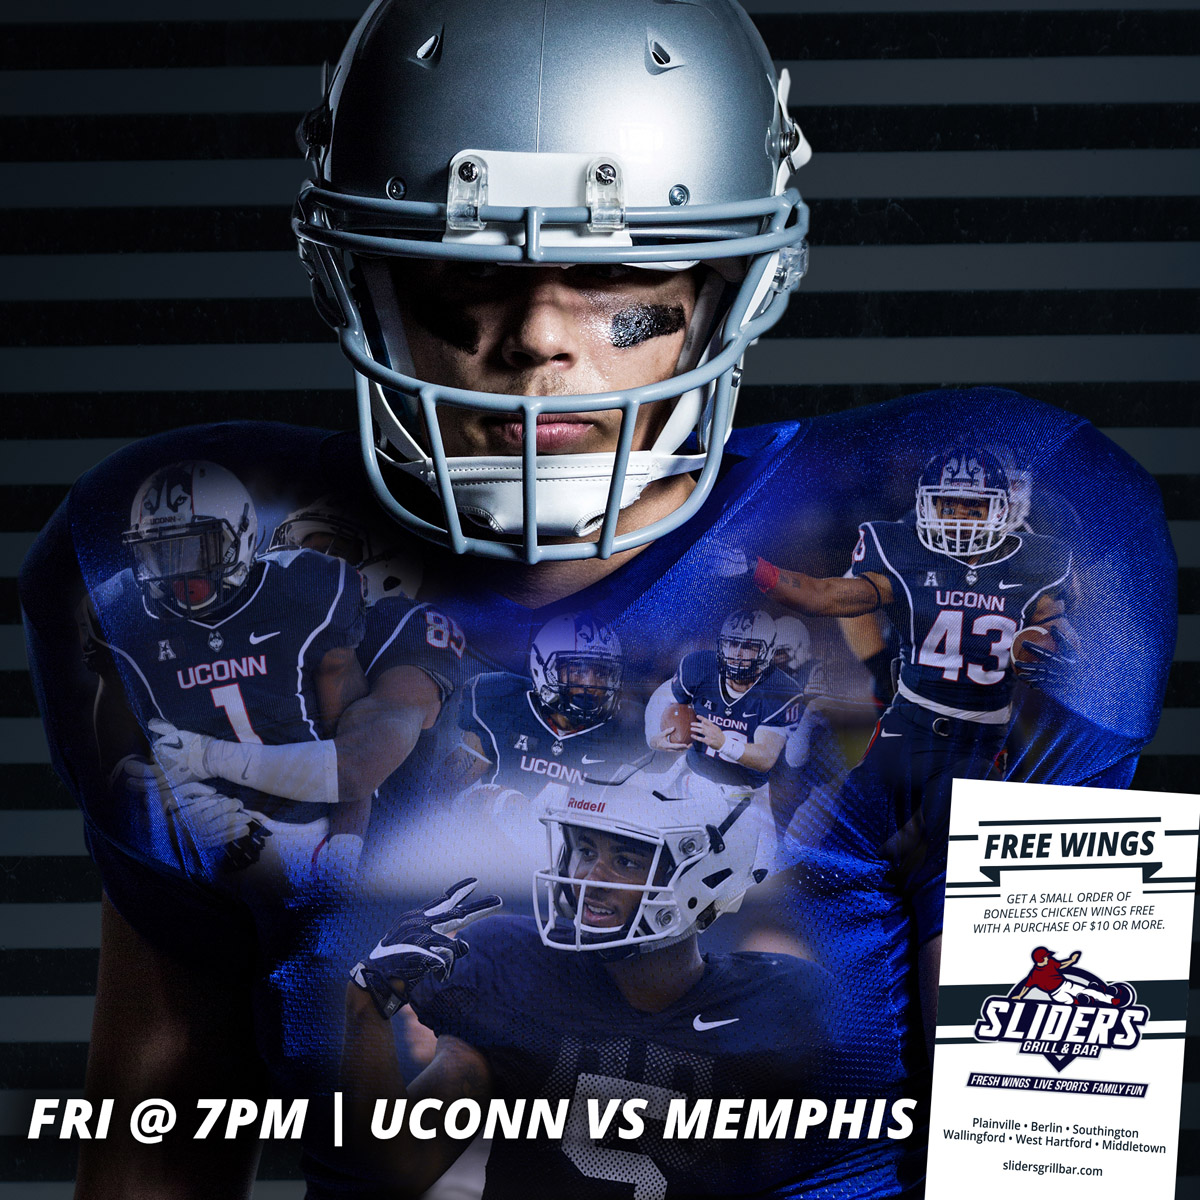 Friday Night - UCONN vs Memphis